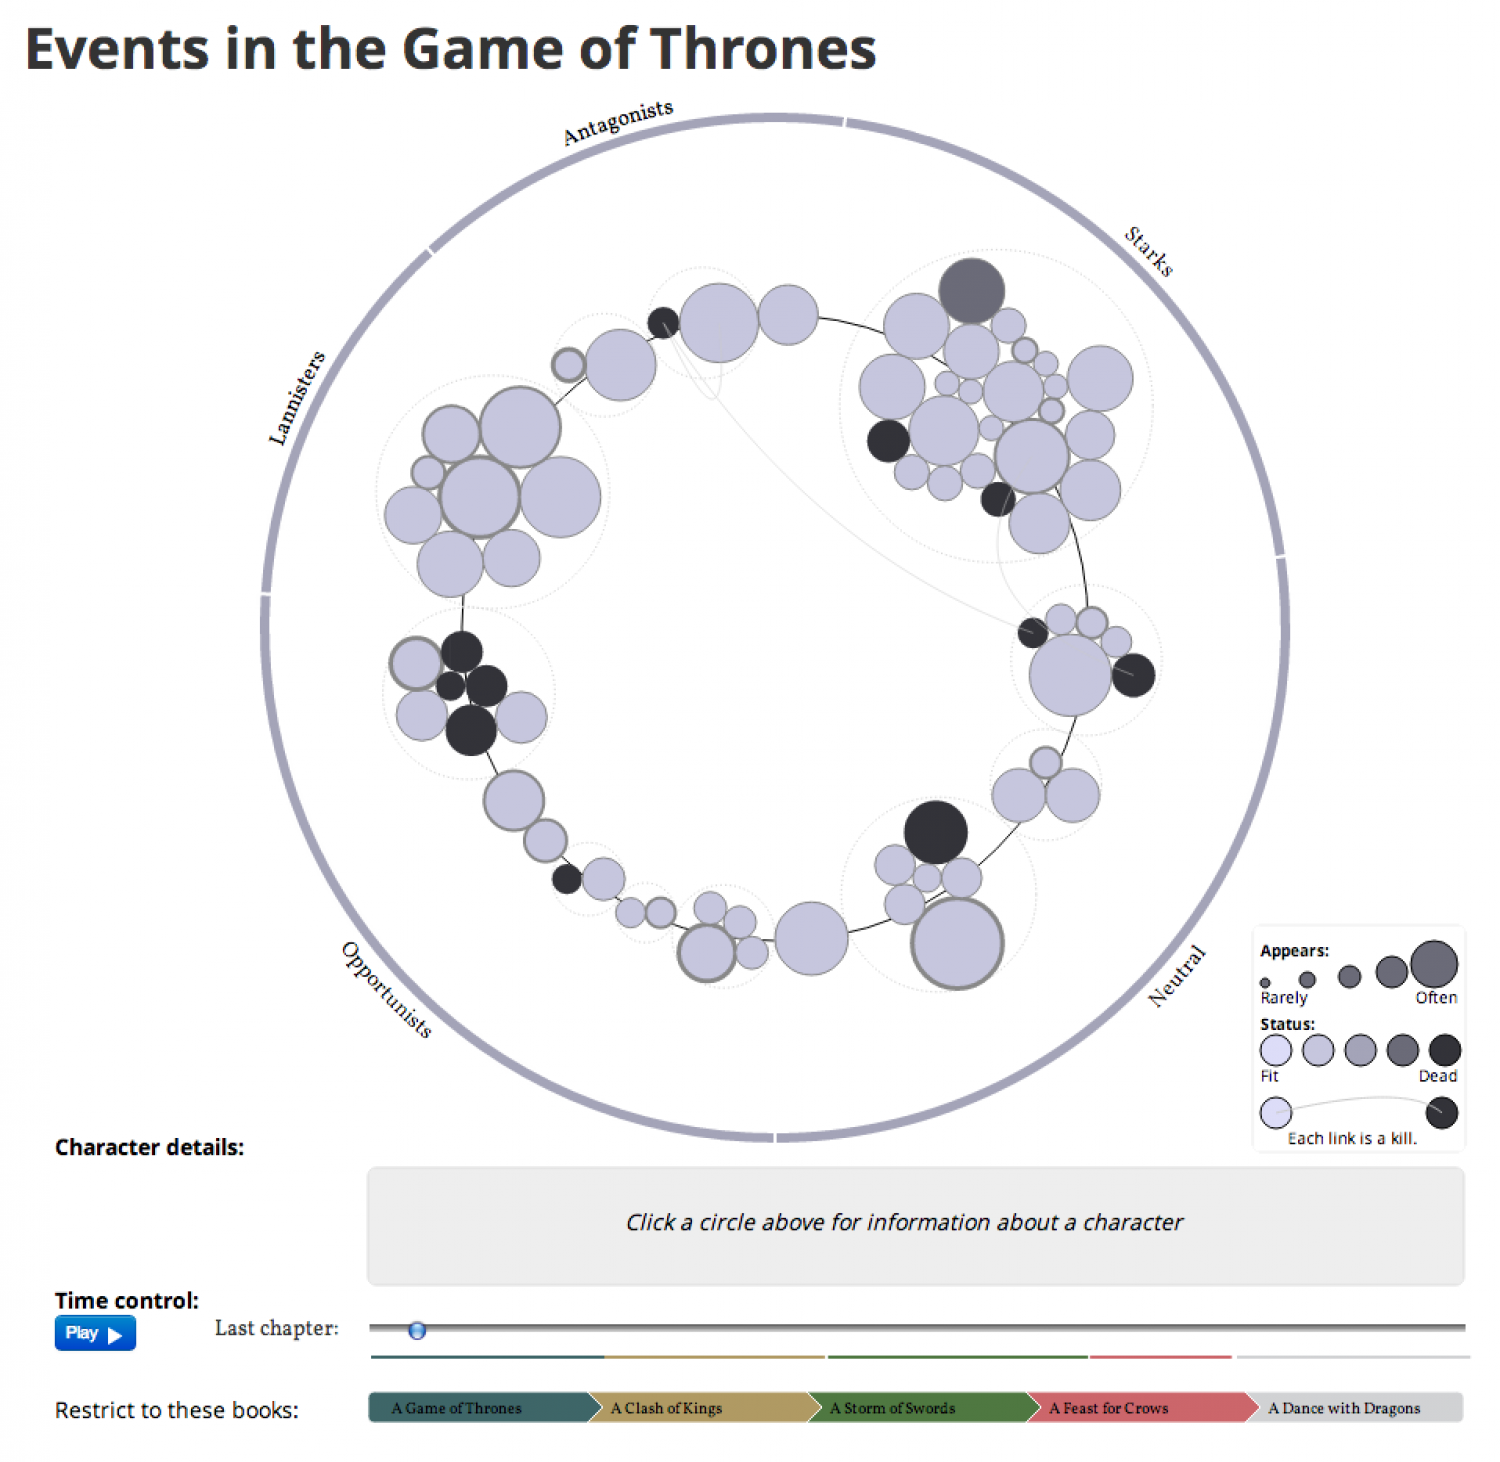 Events in the Game of Thrones Infographic